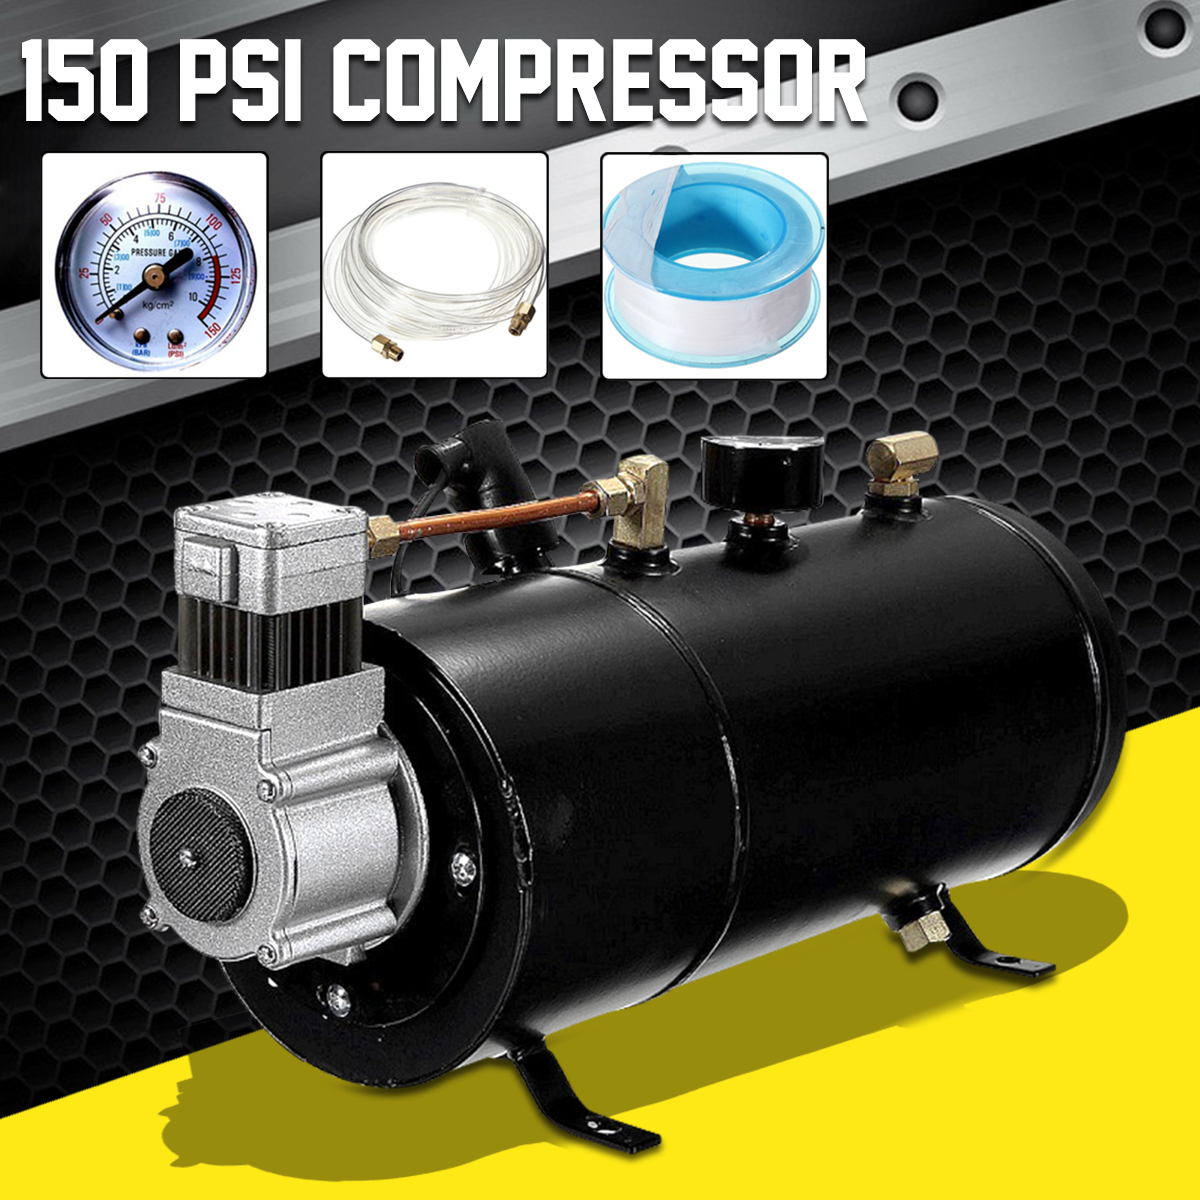 150 PSI 12V Compressor Electric Air Compressor  with 3 liters Tank Capacity for Air Horn Train Truck Auto Bicycles Tire H004150 PSI 12V Compressor Electric Air Compressor  with 3 liters Tank Capacity for Air Horn Train Truck Auto Bicycles Tire H004